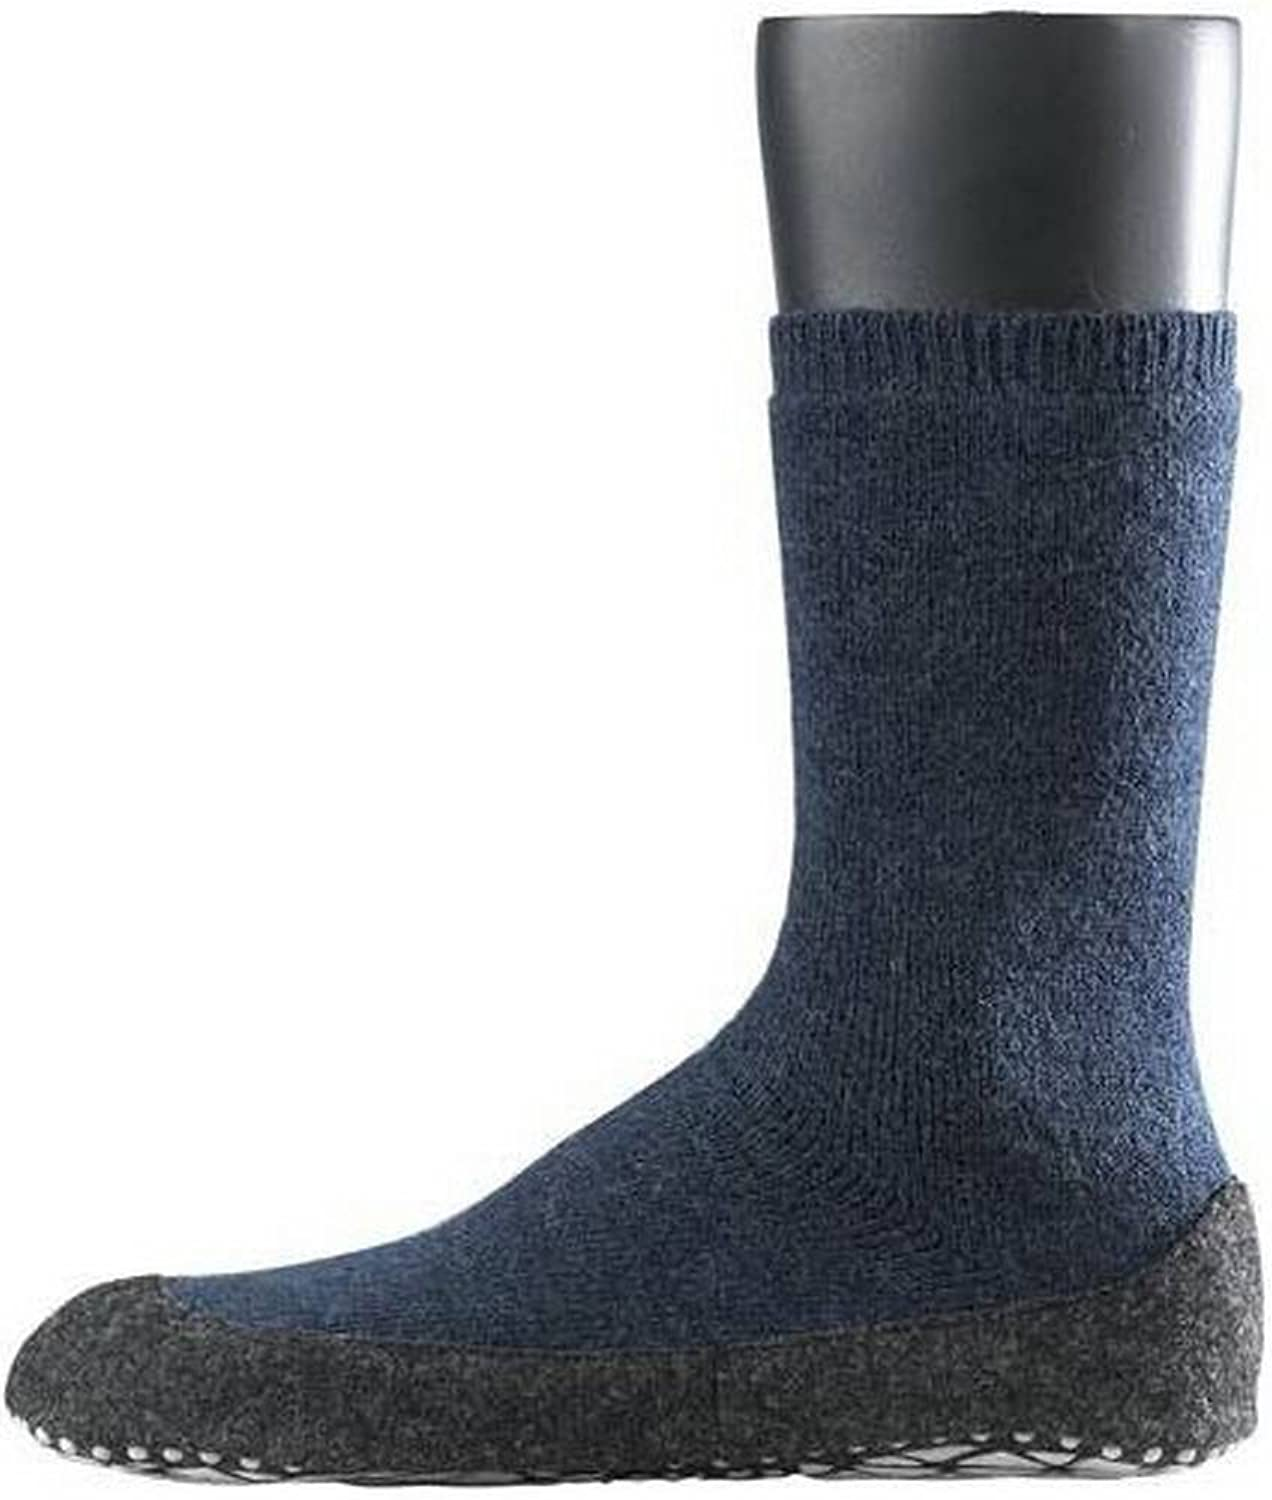 Discount Dark Blue Cosyshoe Midcalf Socks by Falke for cheap